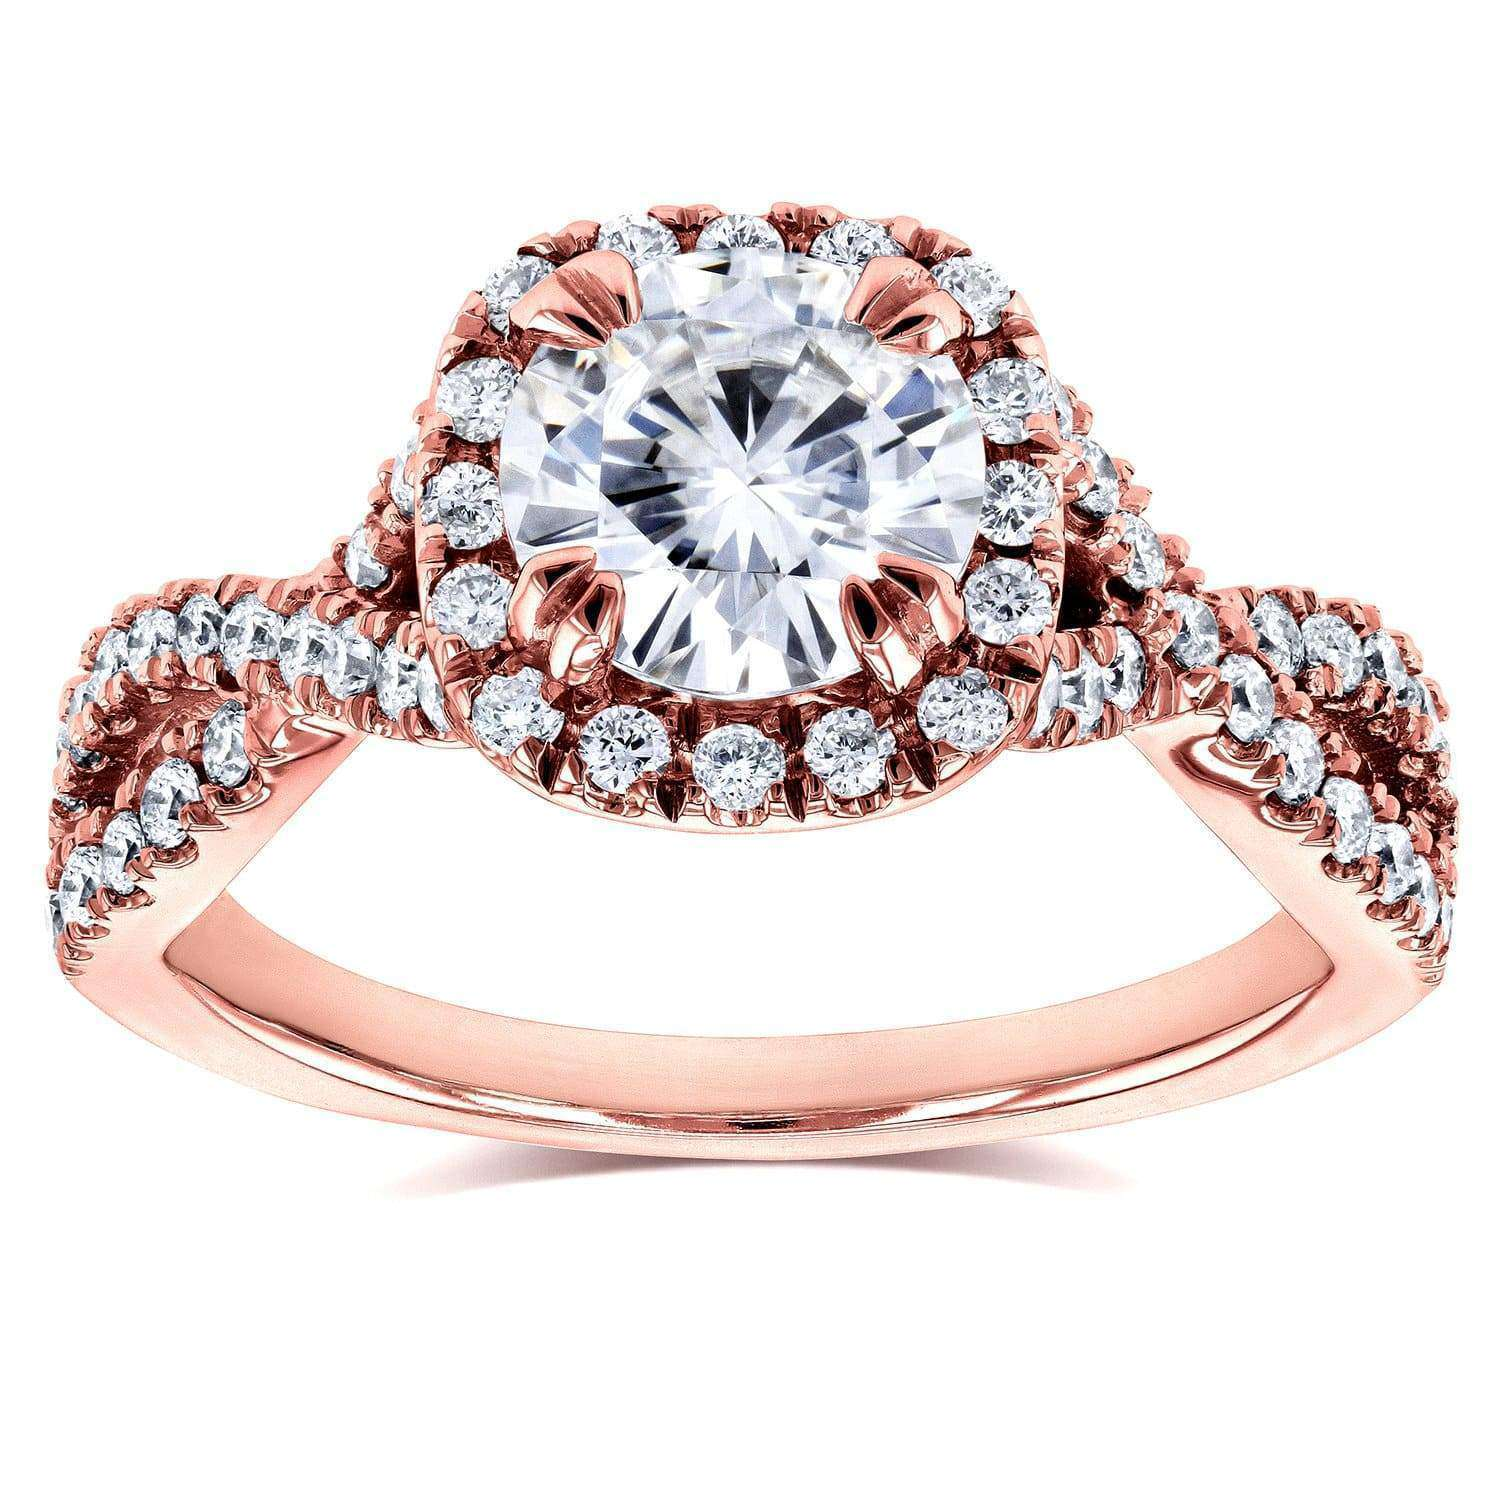 Coupons Near-Colorless (F-G) Moissanite Engagement Ring and Diamond 1 1/2 CTW 14k Rose Gold - 6